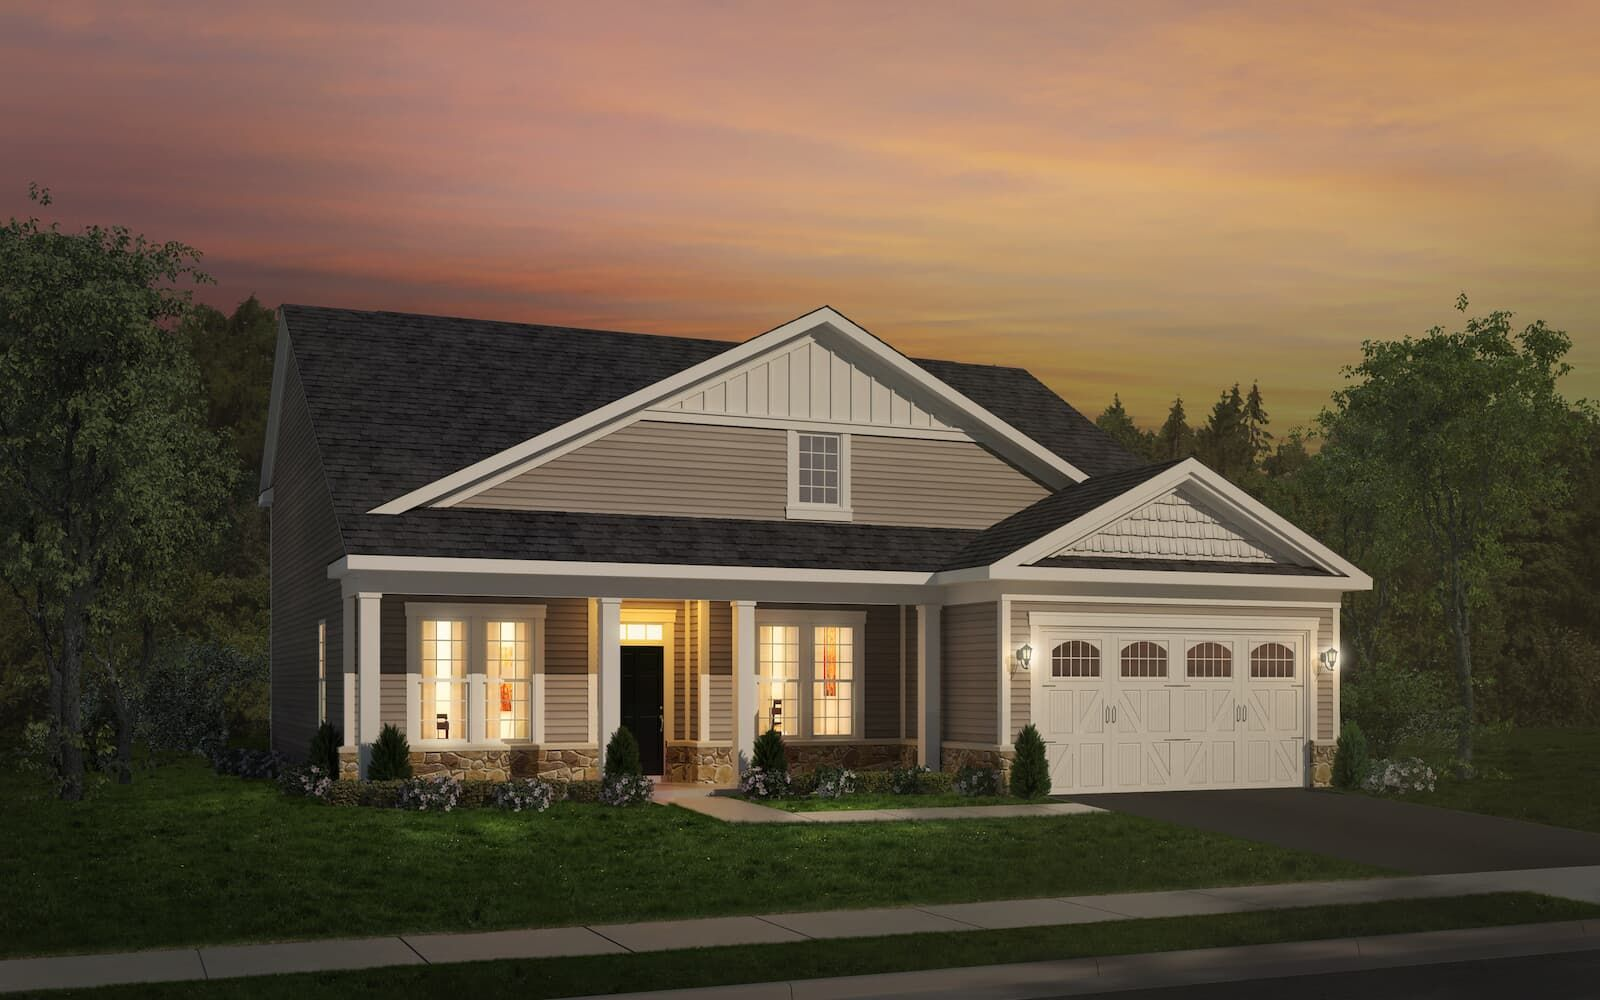 Exterior:Elevation 1 of the Pearson a home design offered at Heritage Shores in Bridgeville DE by Brookfield Residential